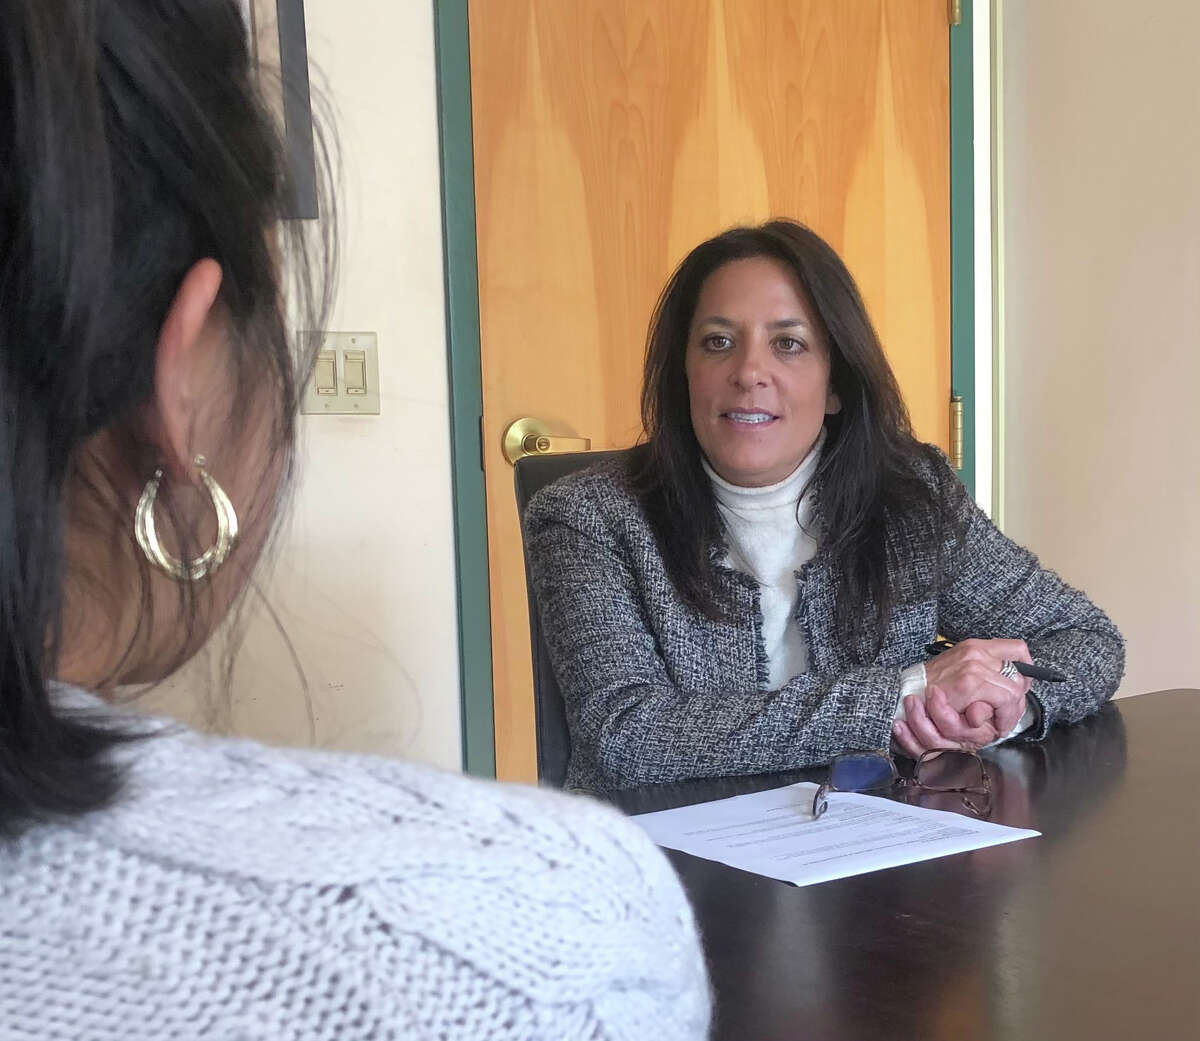 Nancy Bambera, right, vice president and chief operating officer of DZ Restaurants, which operates three eateries in Saratoga Springs, interviews a job candidate on Thursday, April 21, 2021. (Photo courtesy DZ Restaurants.)